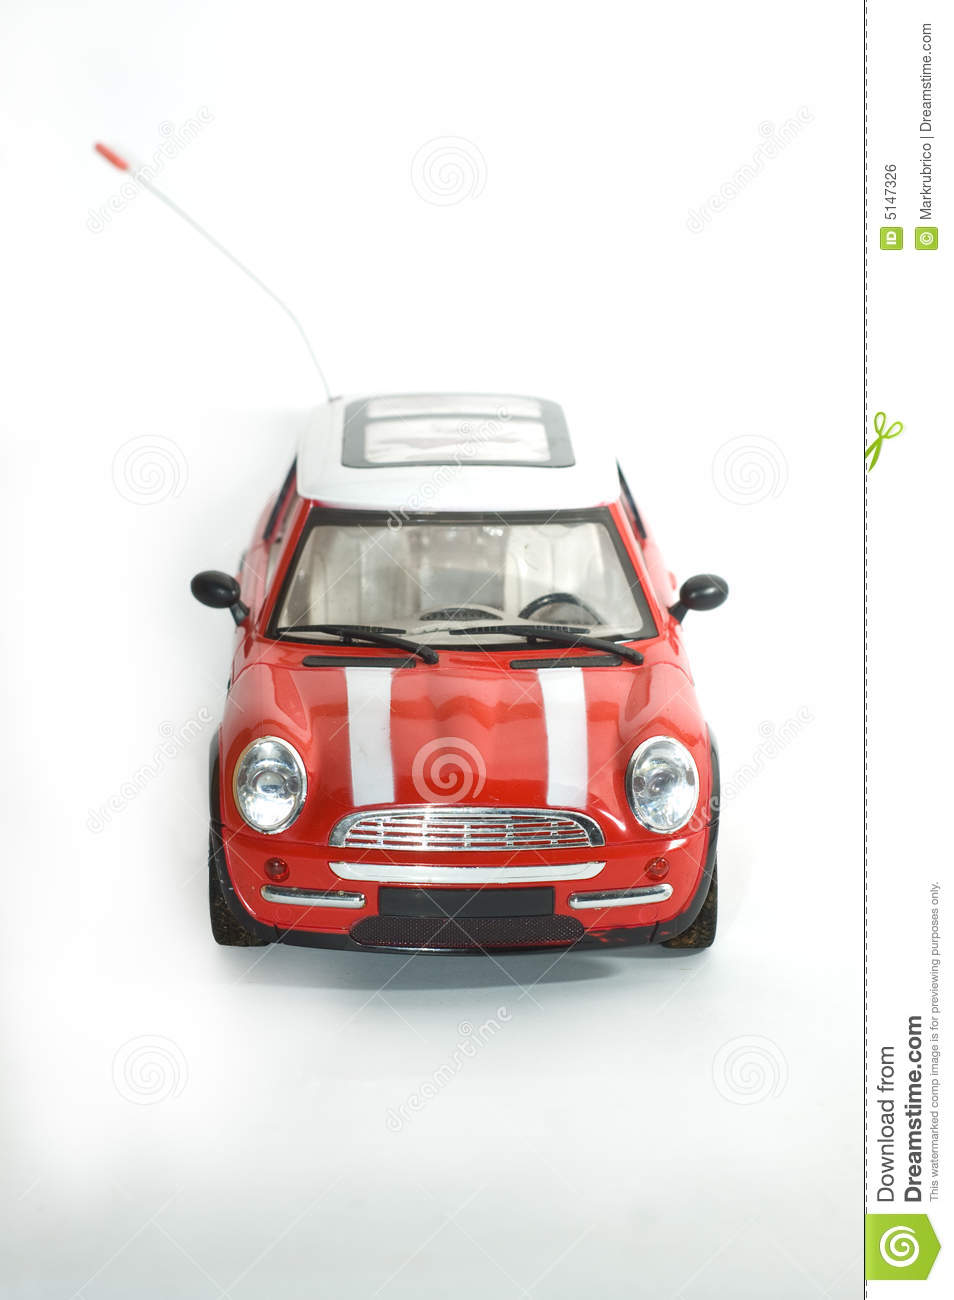 Red Mini Cooper Toy Car Stock Photo Image Of Remote Control 5147326